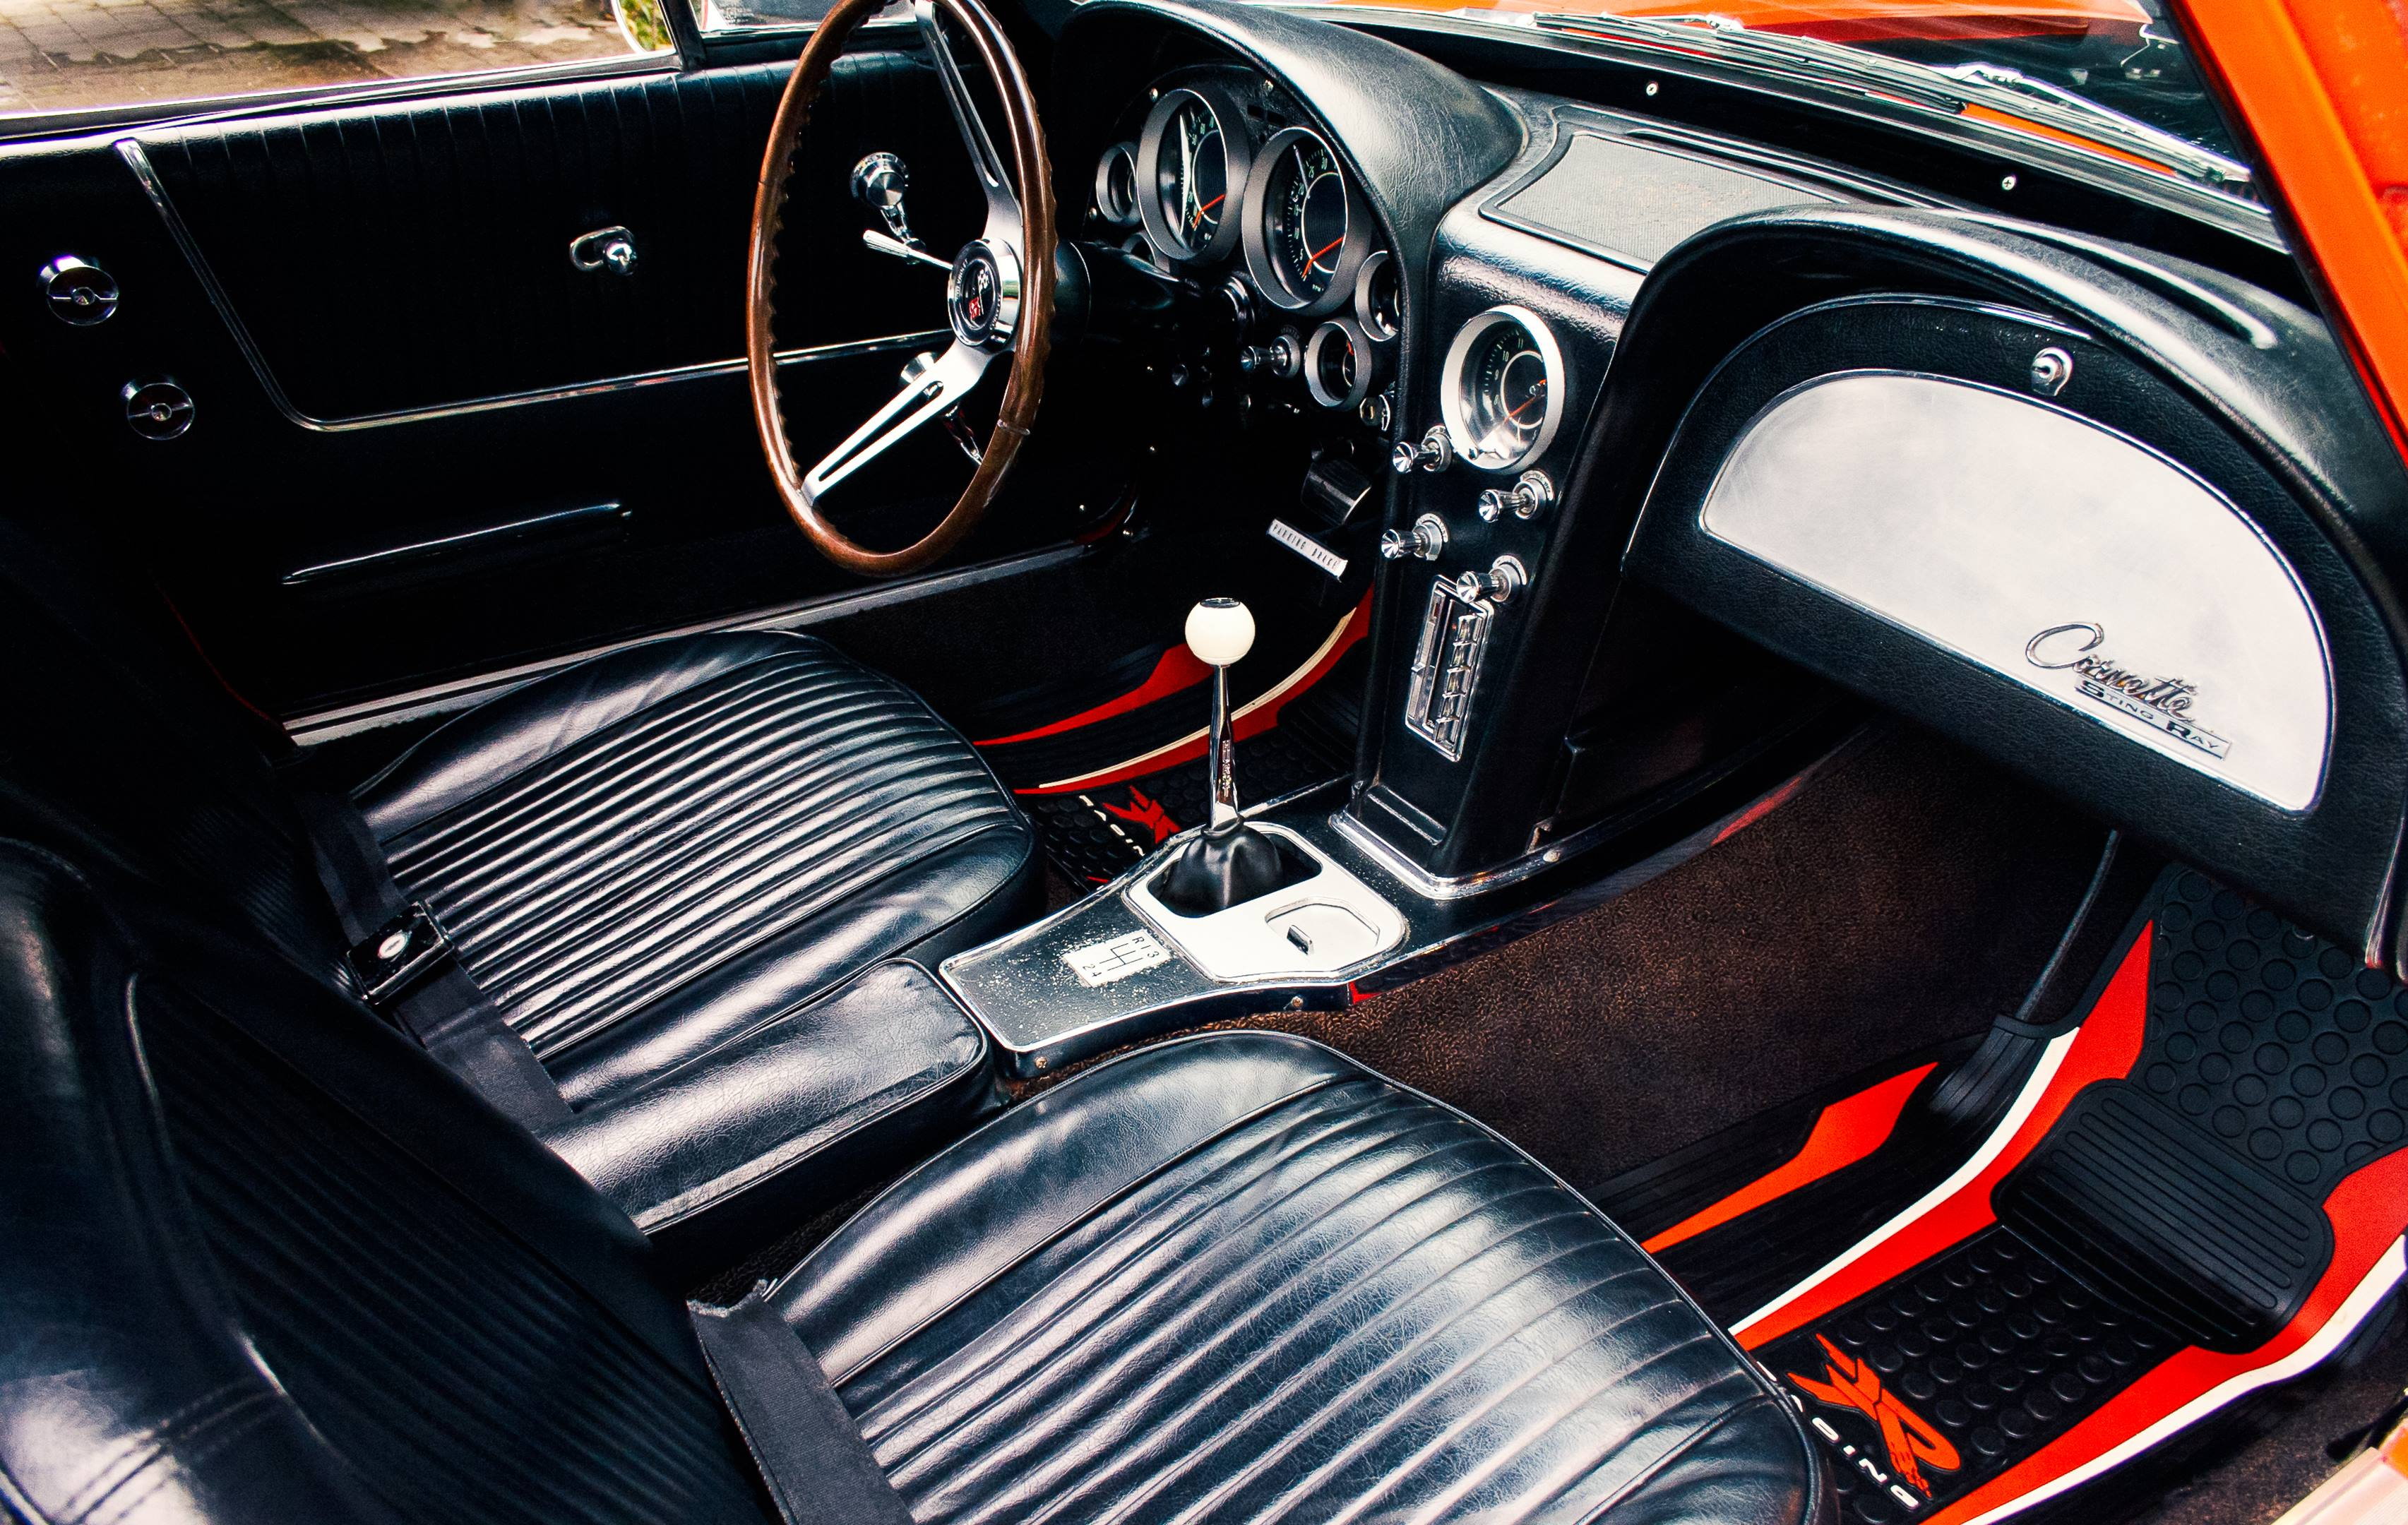 1964 Chevrolet Corvette interior